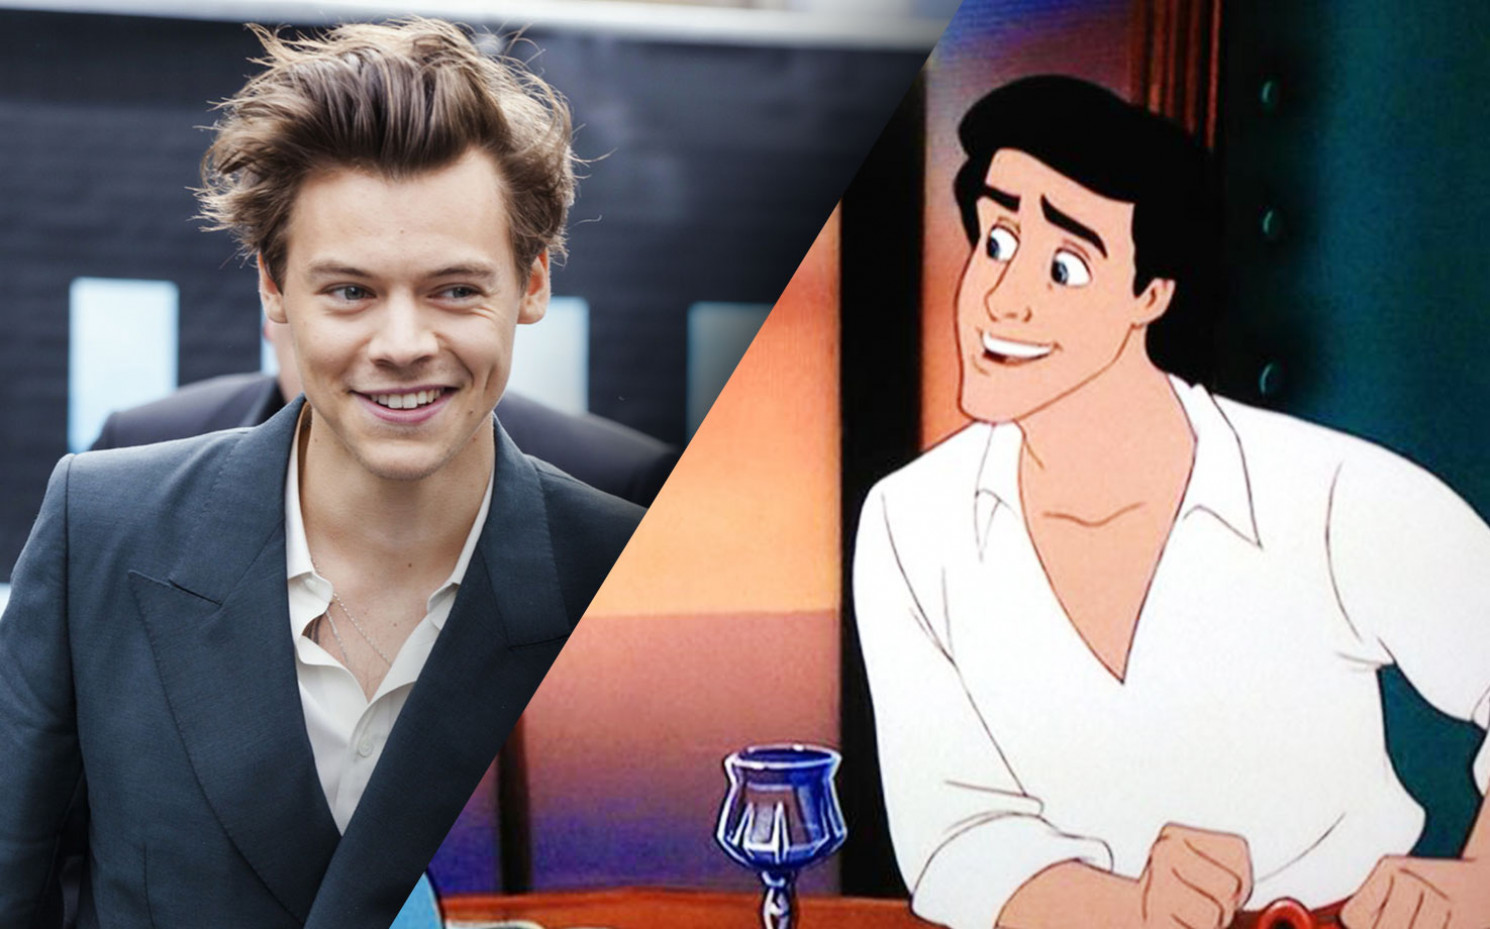 Wird Harry Styles zum Disney-Prinz? / Copyright Disney & Warner